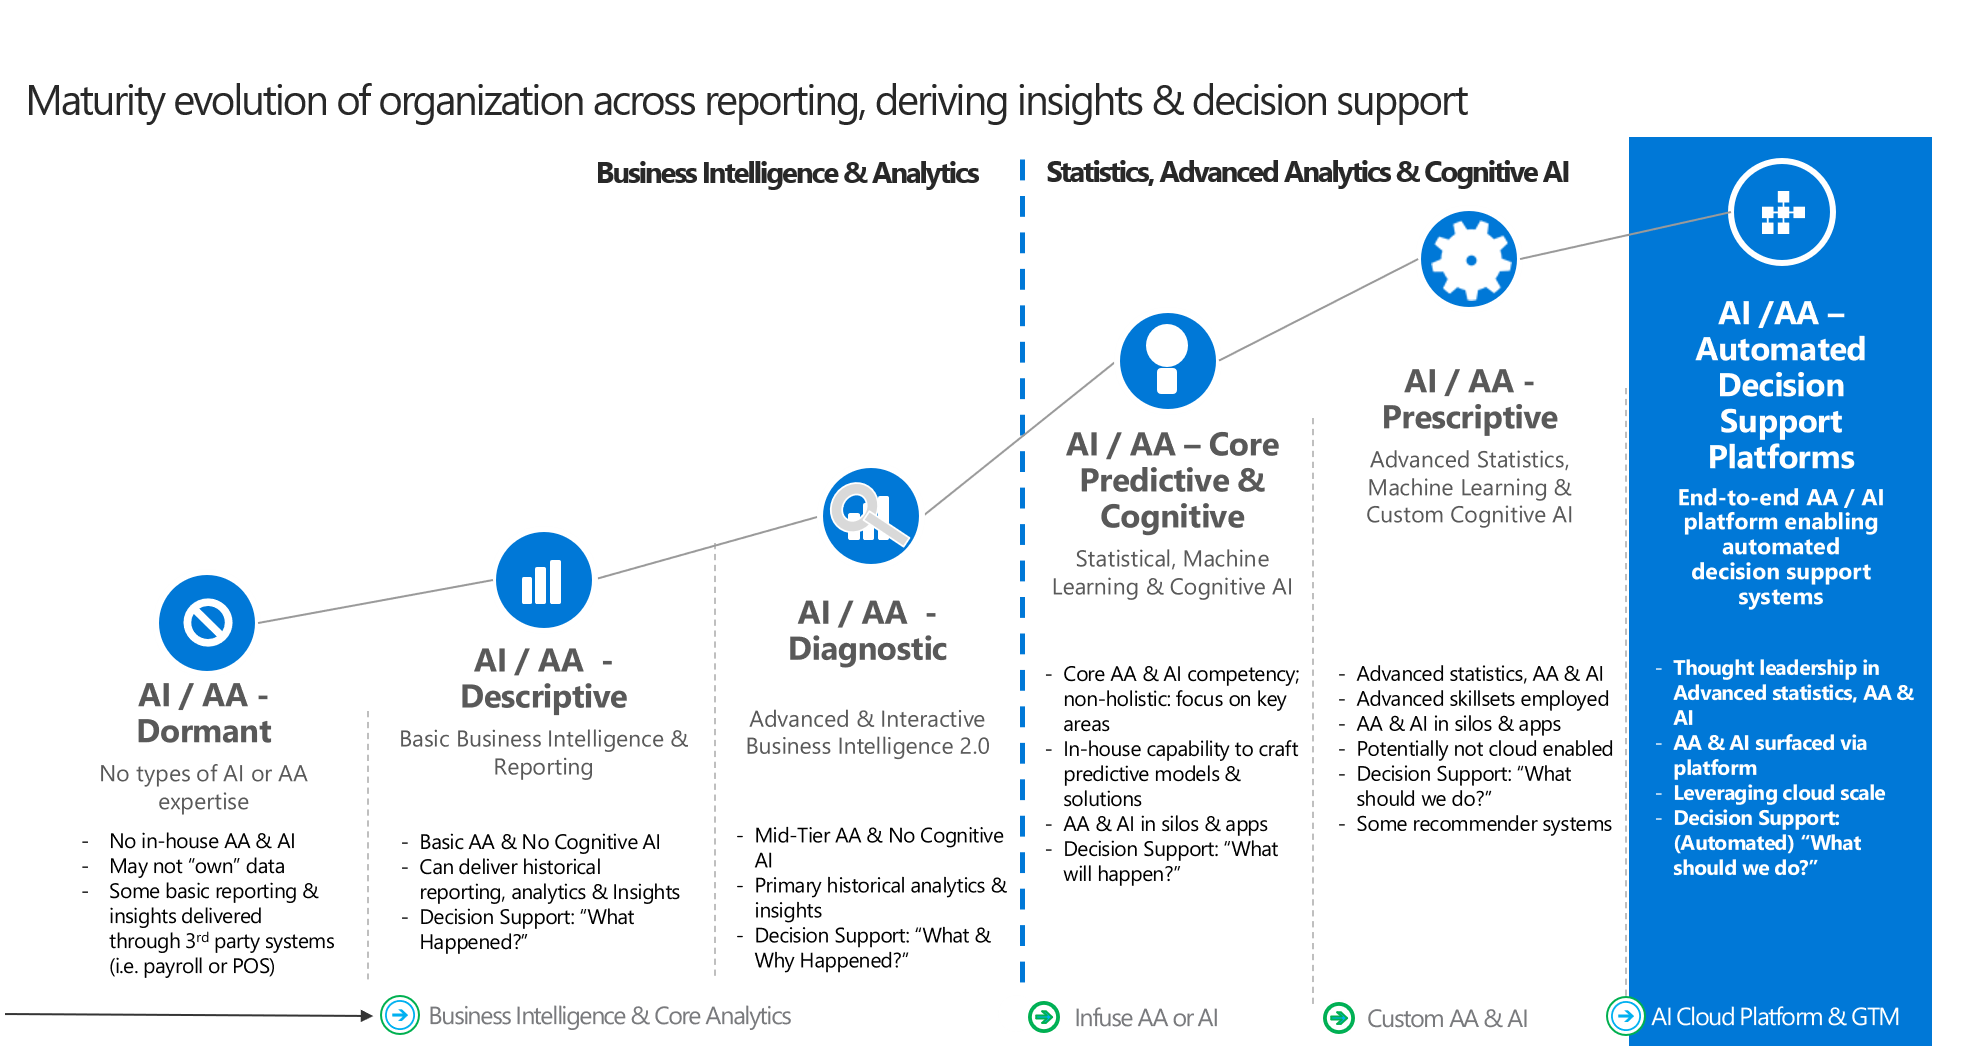 Maturity evolution of organisation's data strategy across reporting, deriving insights & decision support.